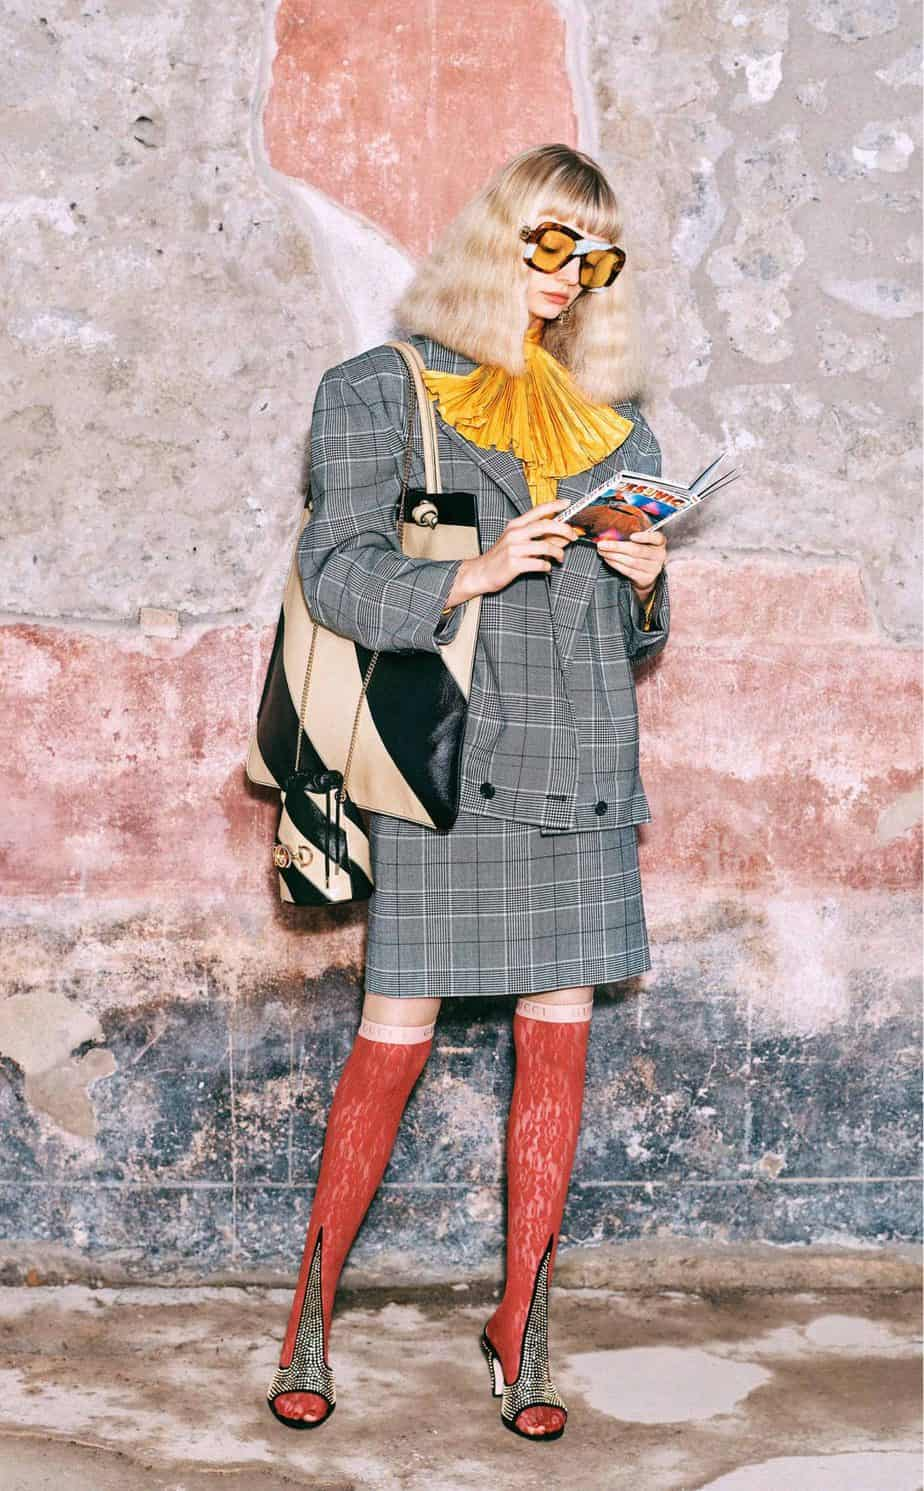 GUCCI, FALL 2019. WOMEN'S FASHION, Photographer Harmony Korine, Art Director, Christopher Simmonds - 42